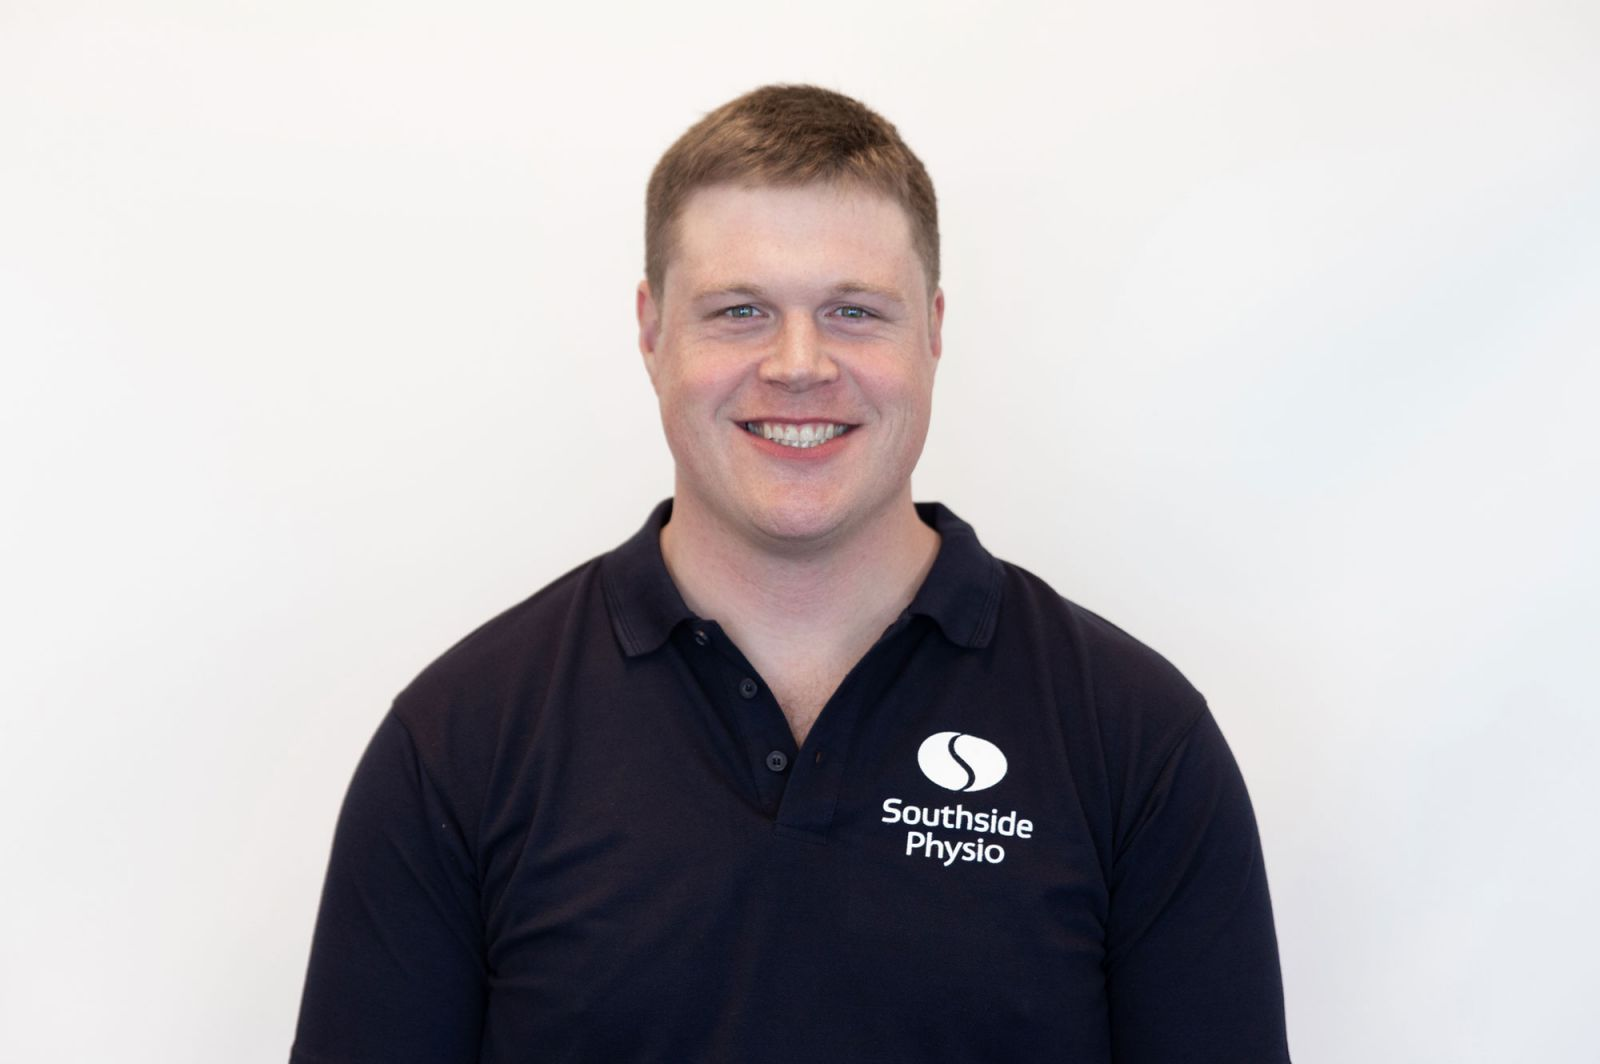 CHRIS MCLACHLAN - Southside Physio, Woden